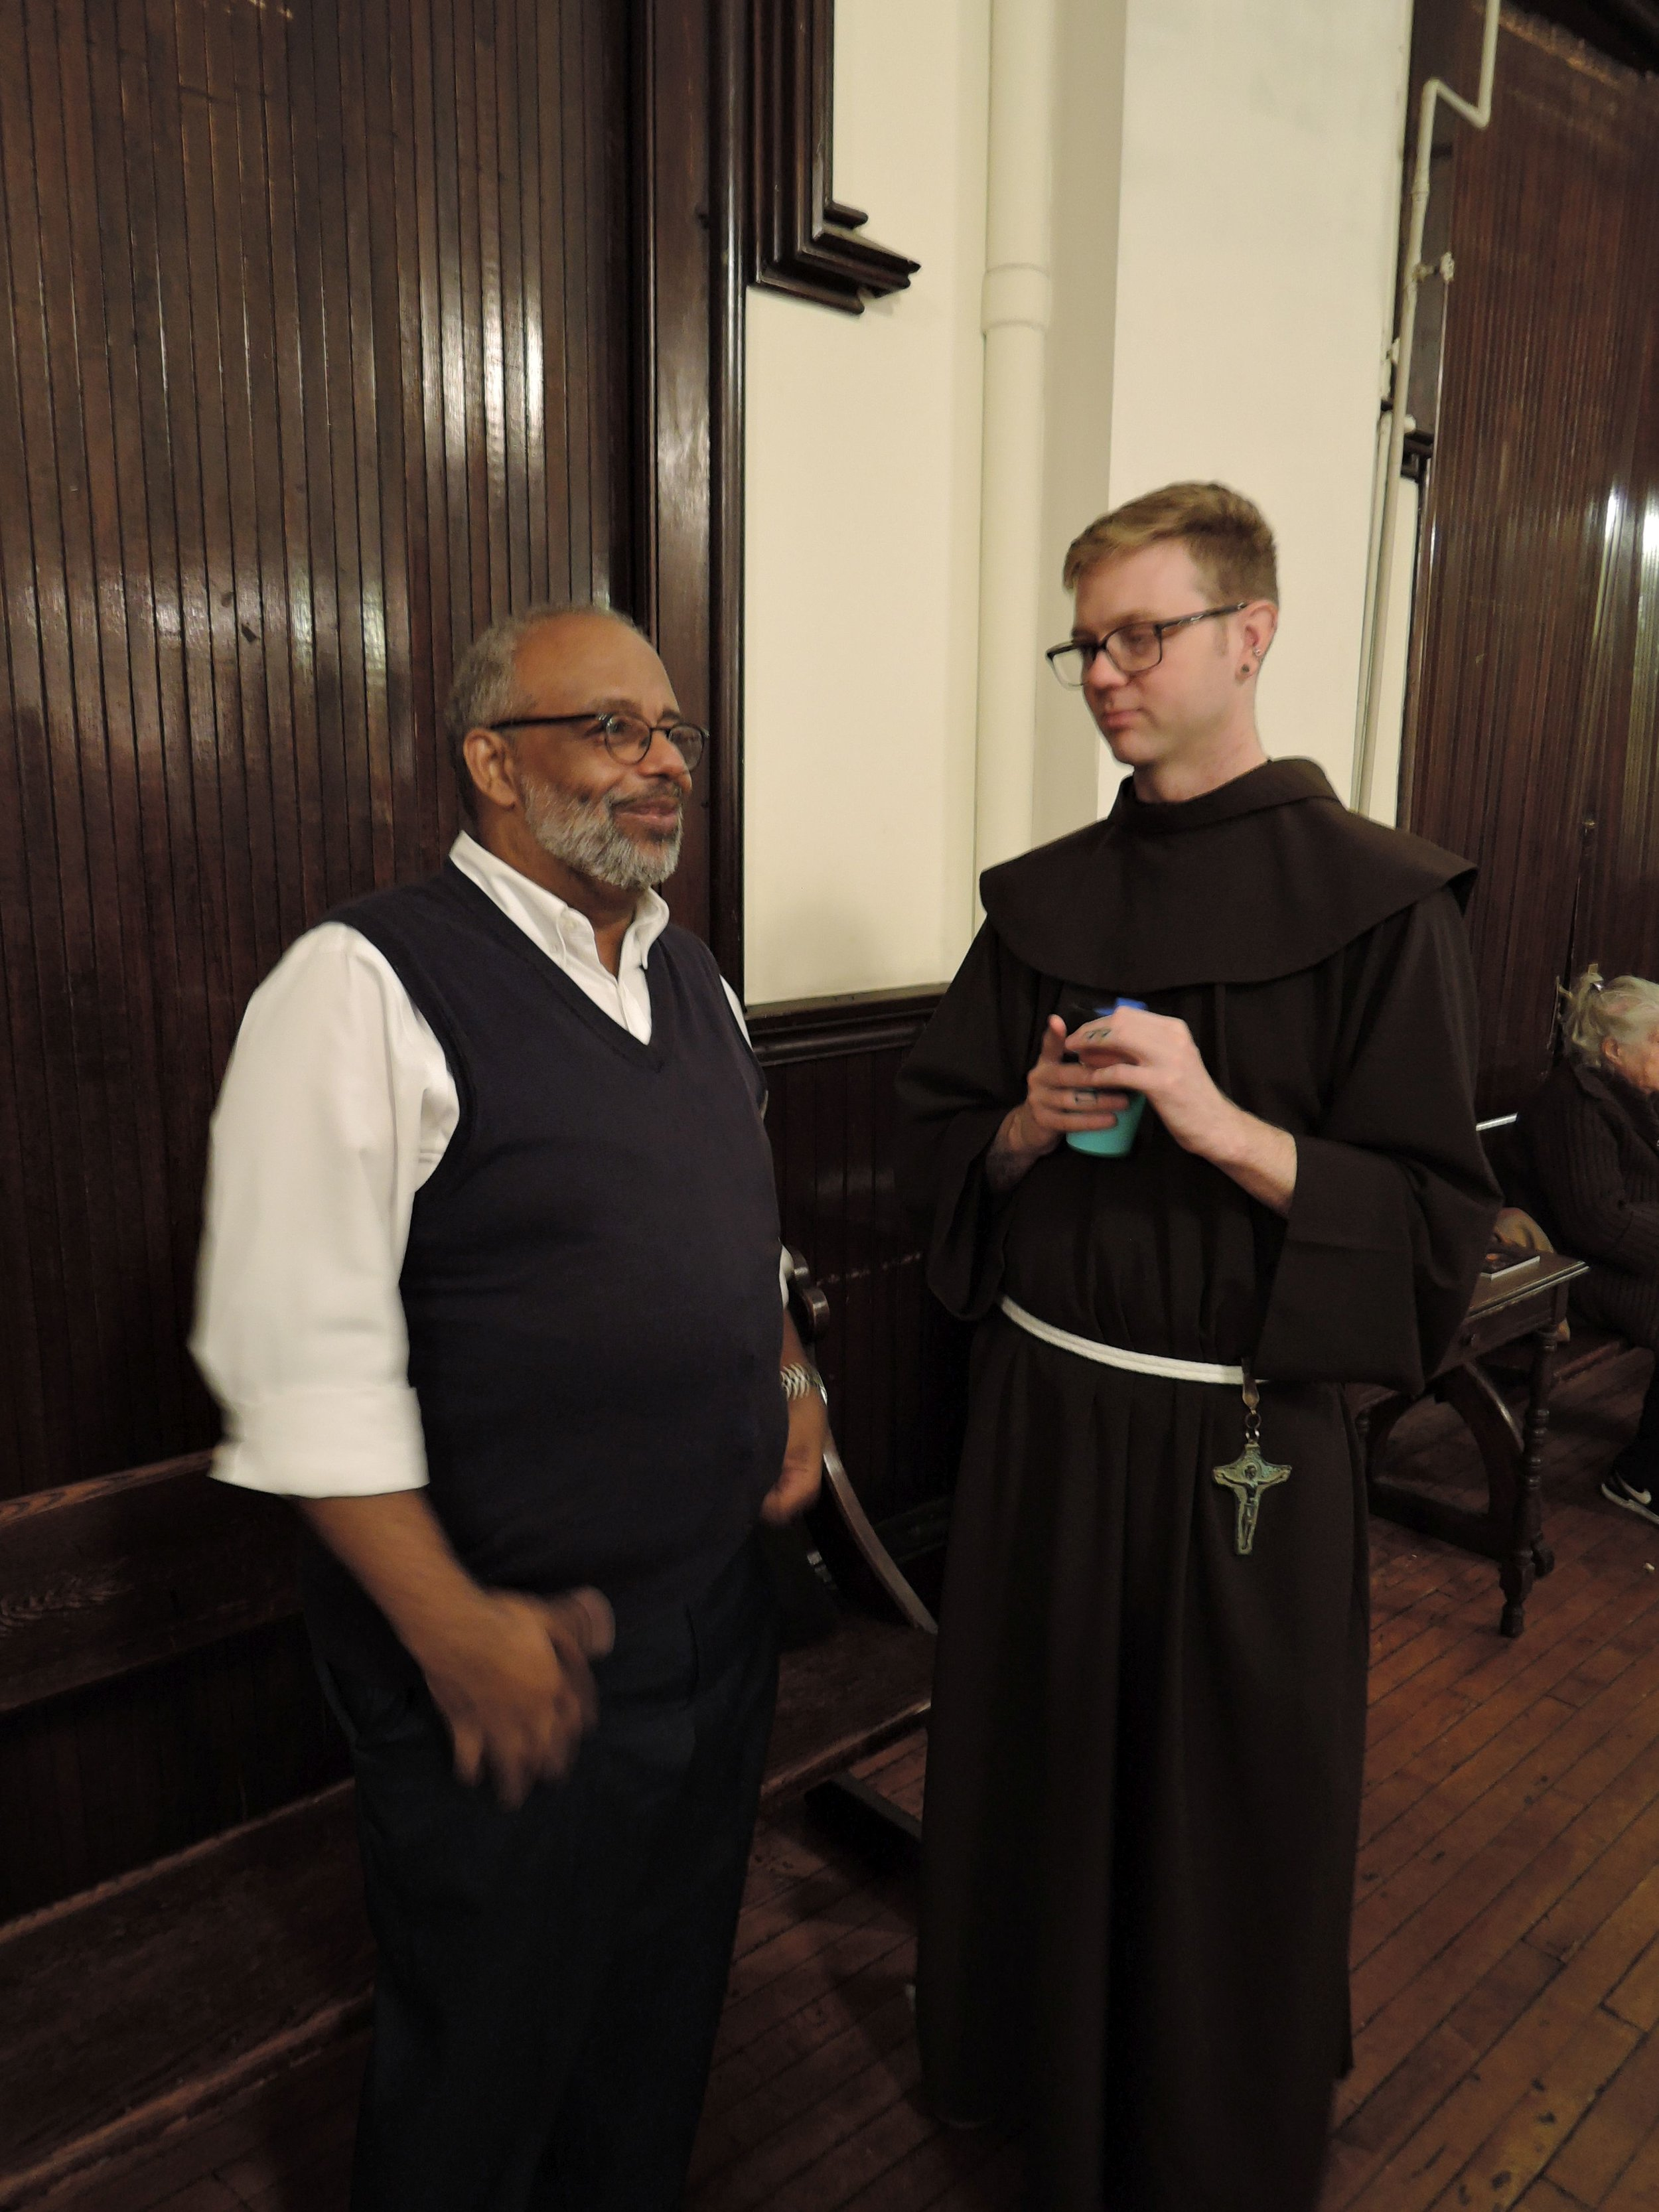 At Coffee Hour: Parishioner and Board member Blair Burroughs and Brother Thomas, SSF  Photo: Brother Damien Joseph, SSF